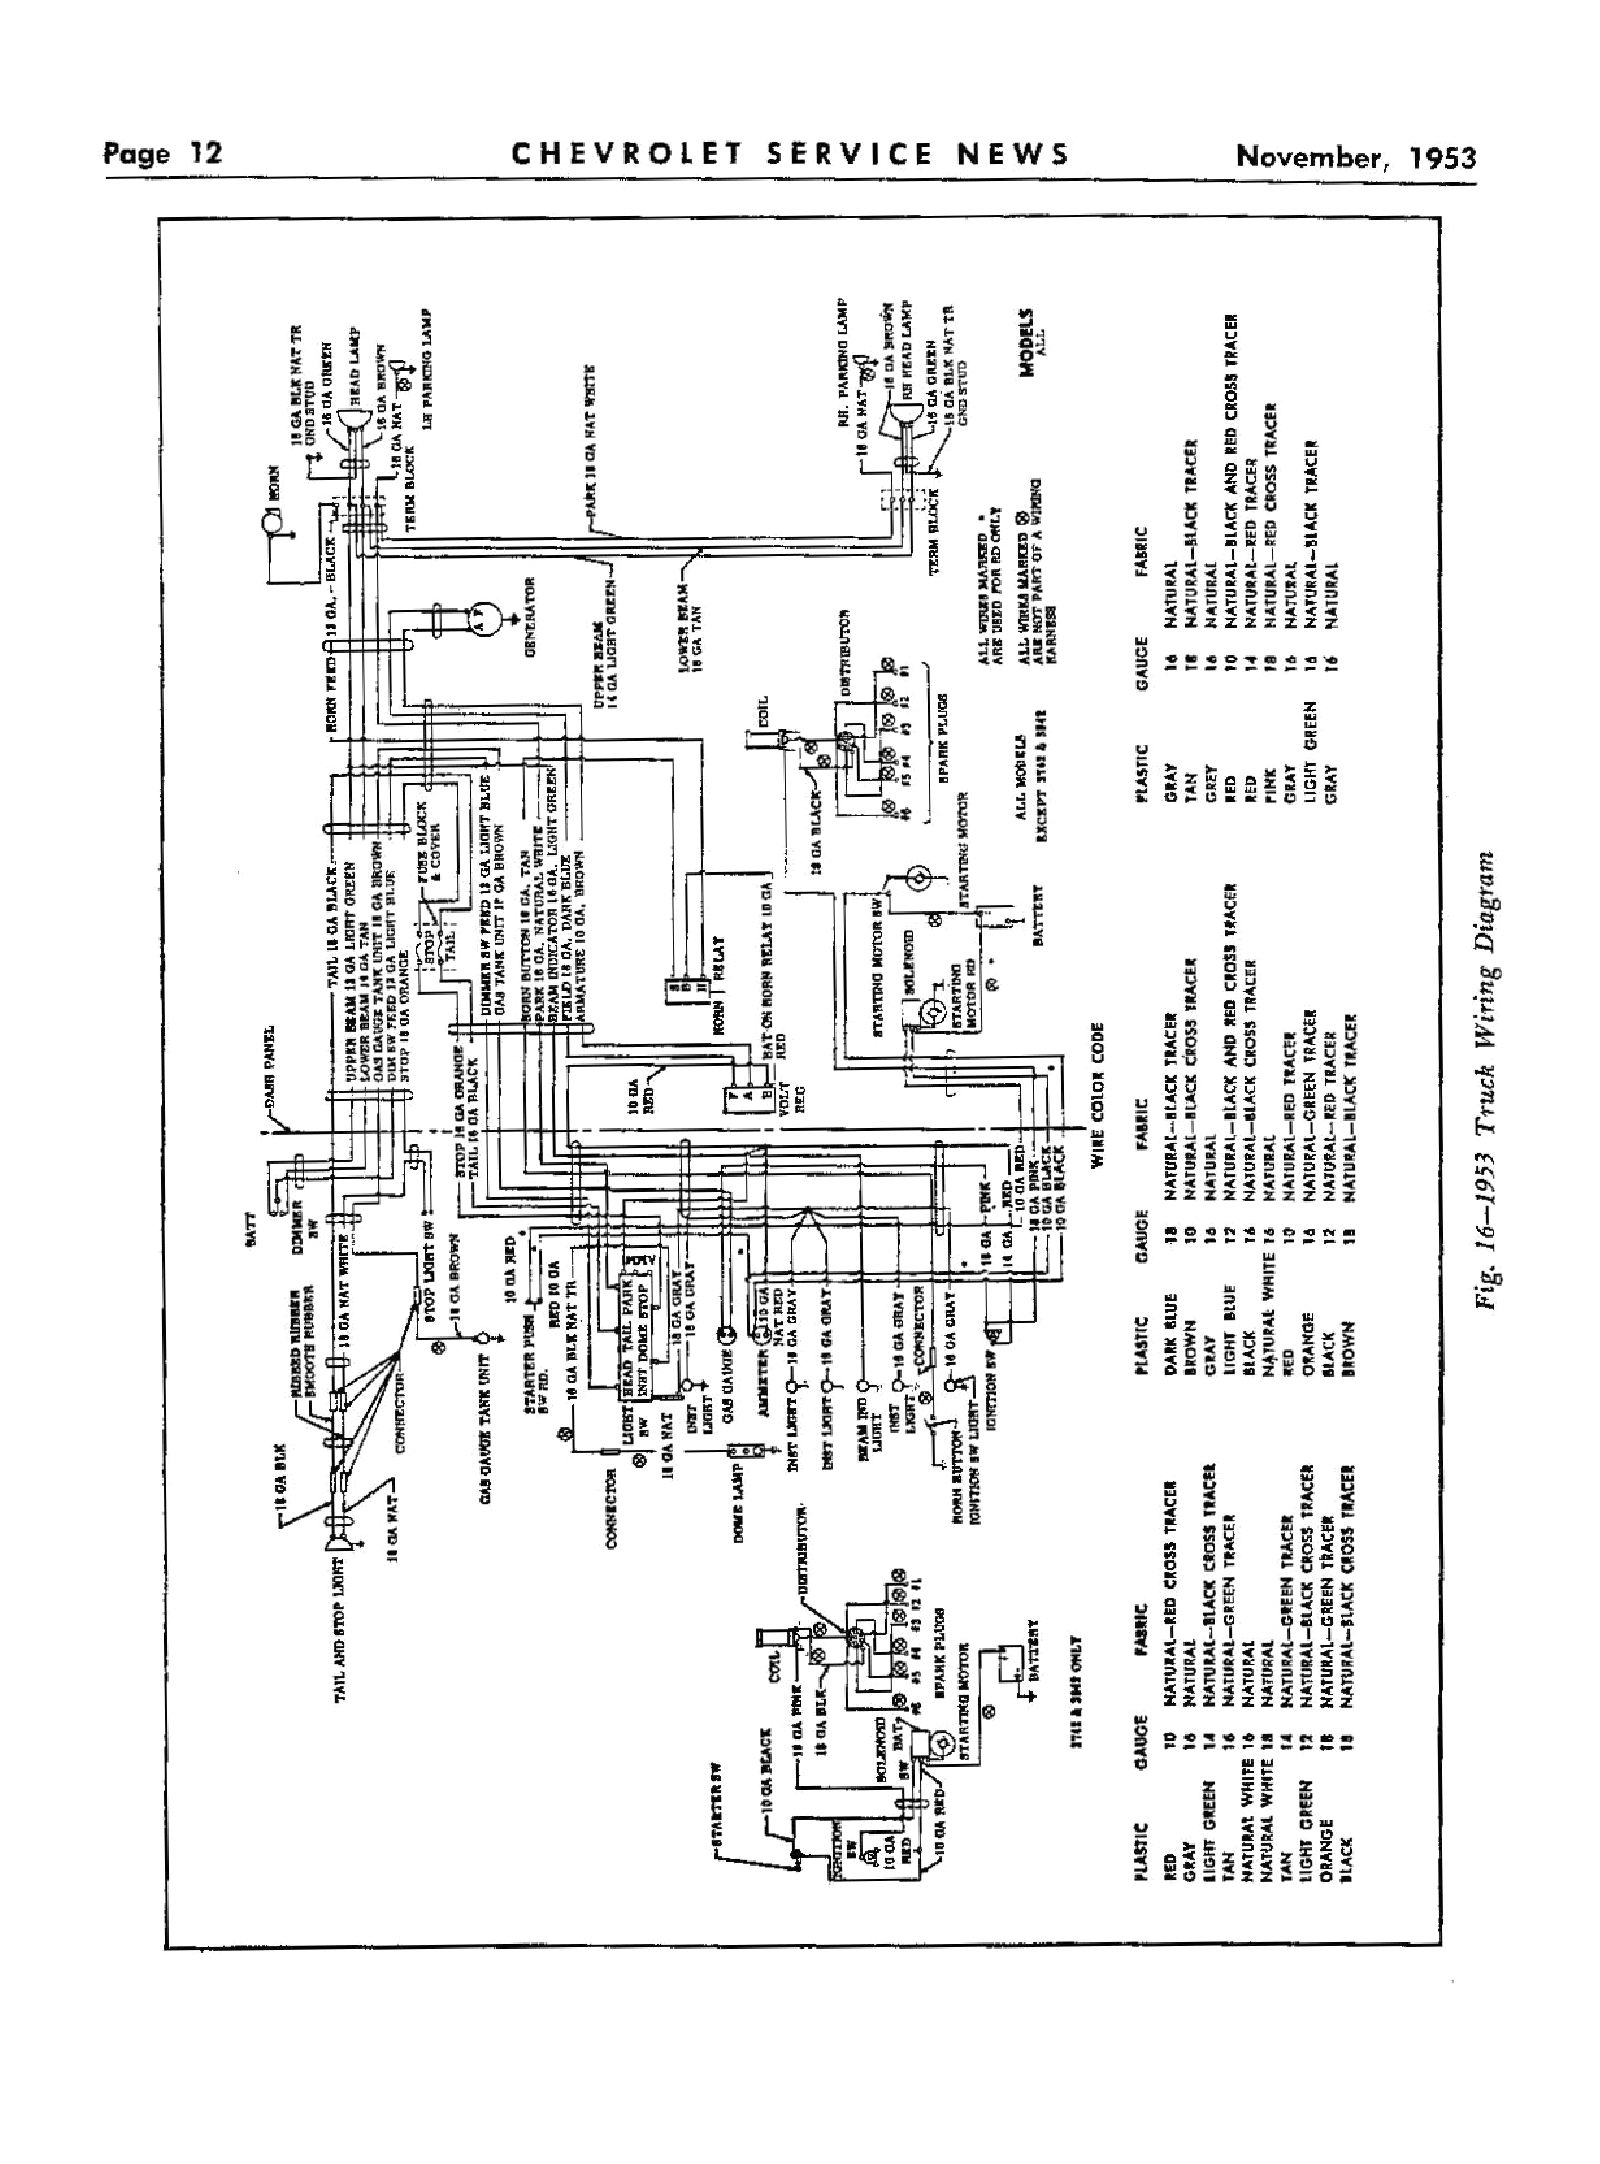 1951 Chevy Deluxe Ignition Wiring Diagrams Chrysler Starter Relay Diagram Pontiac Further 1950 Get Free Image S10 Fuel Pump